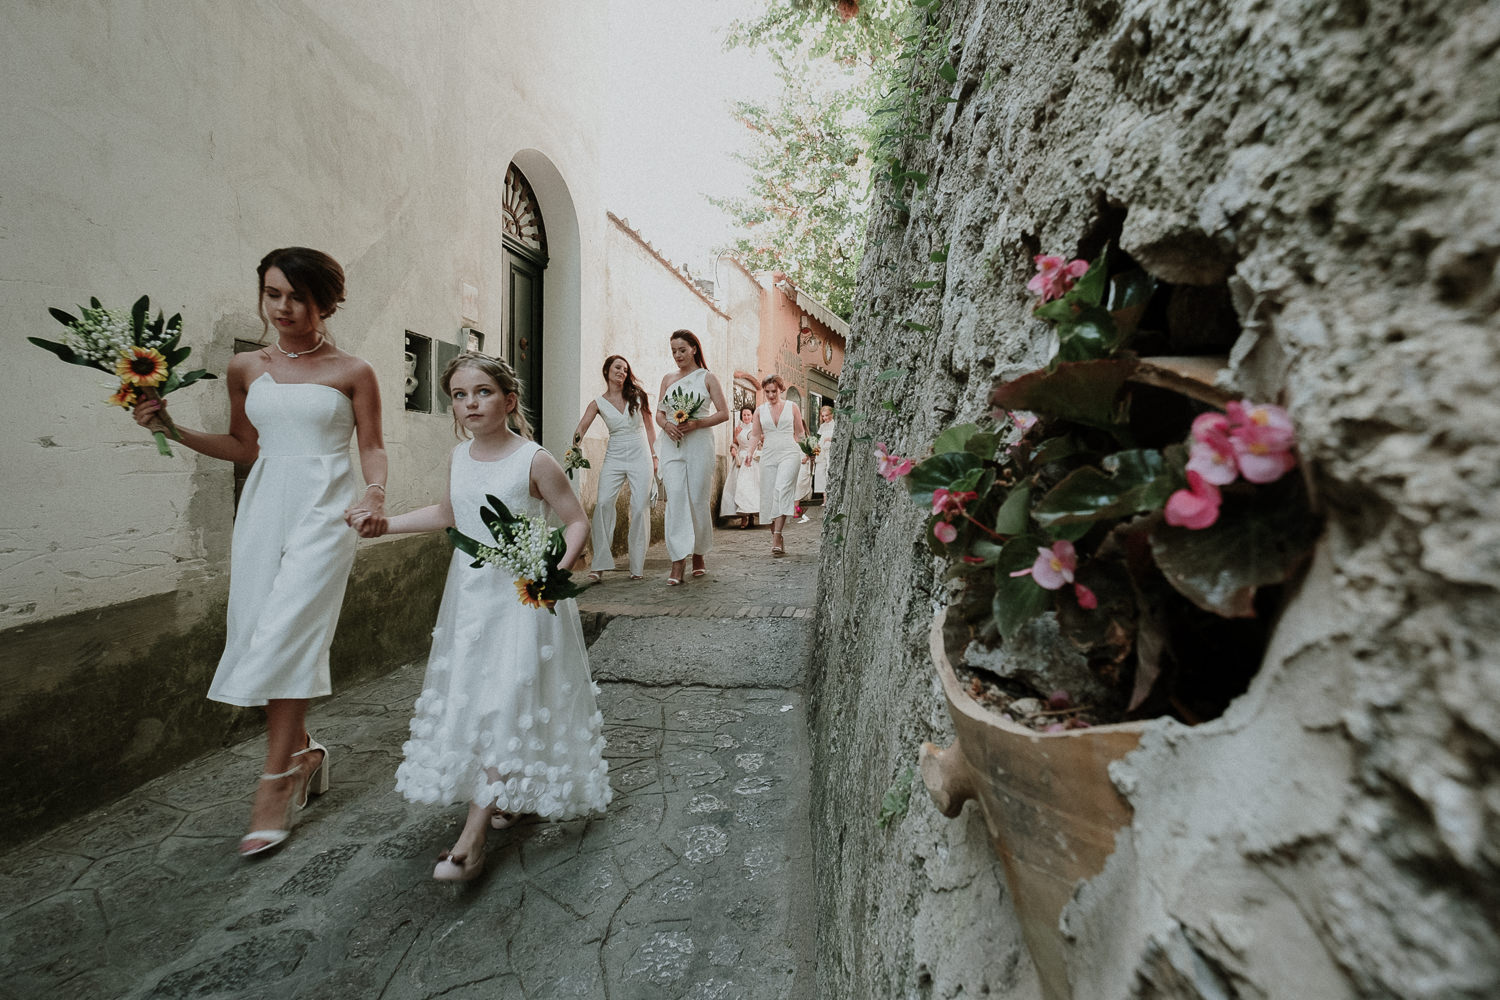 bride-bridemaids-arrive-ceremony-matrimonio-villa-eva-ravello-francesco-ferrarini